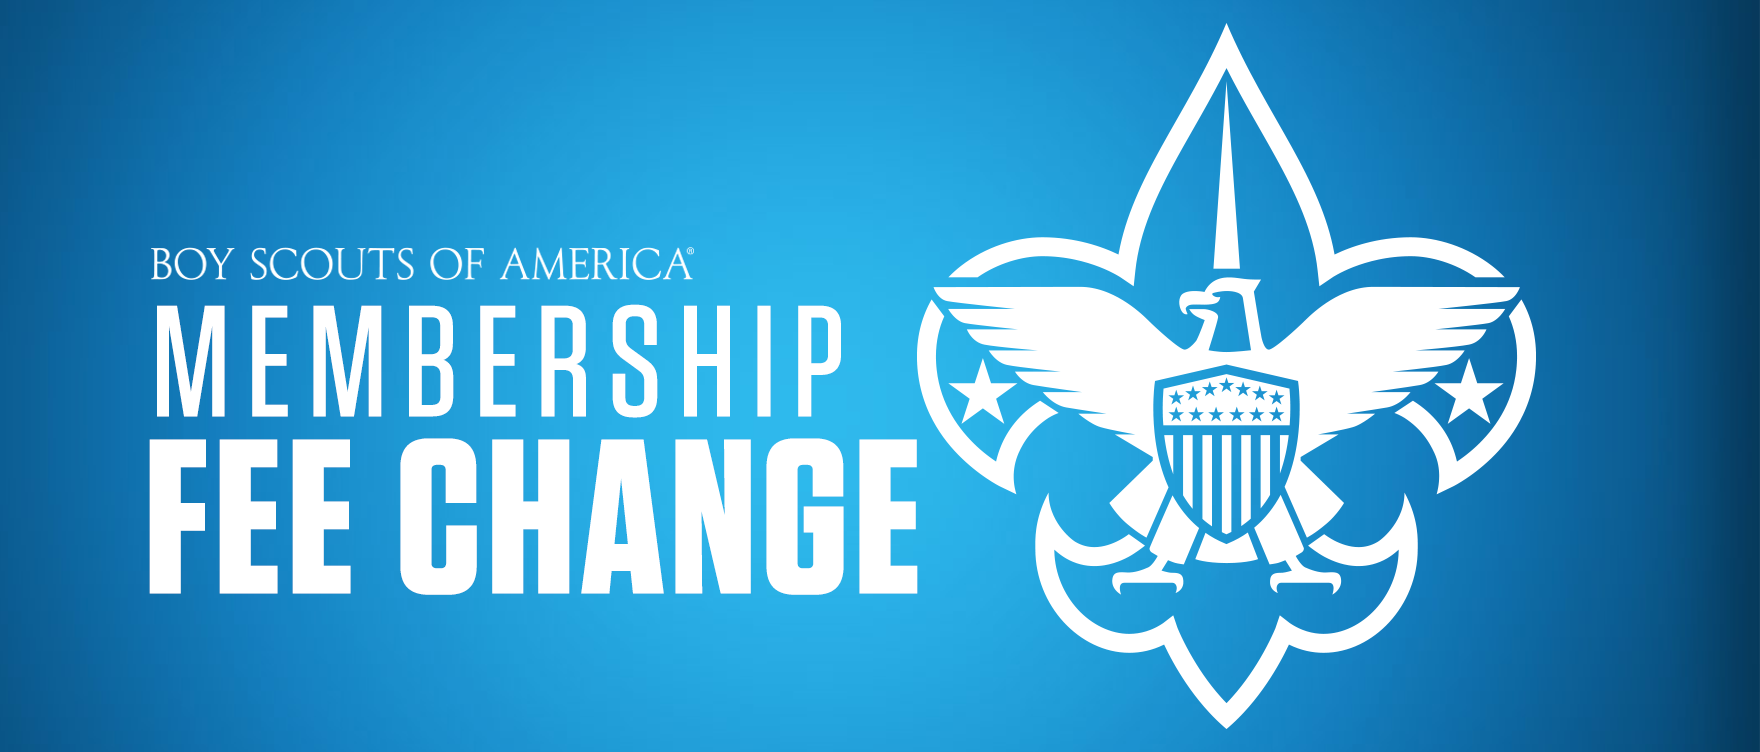 Anticipated BSA Membership Fee Change